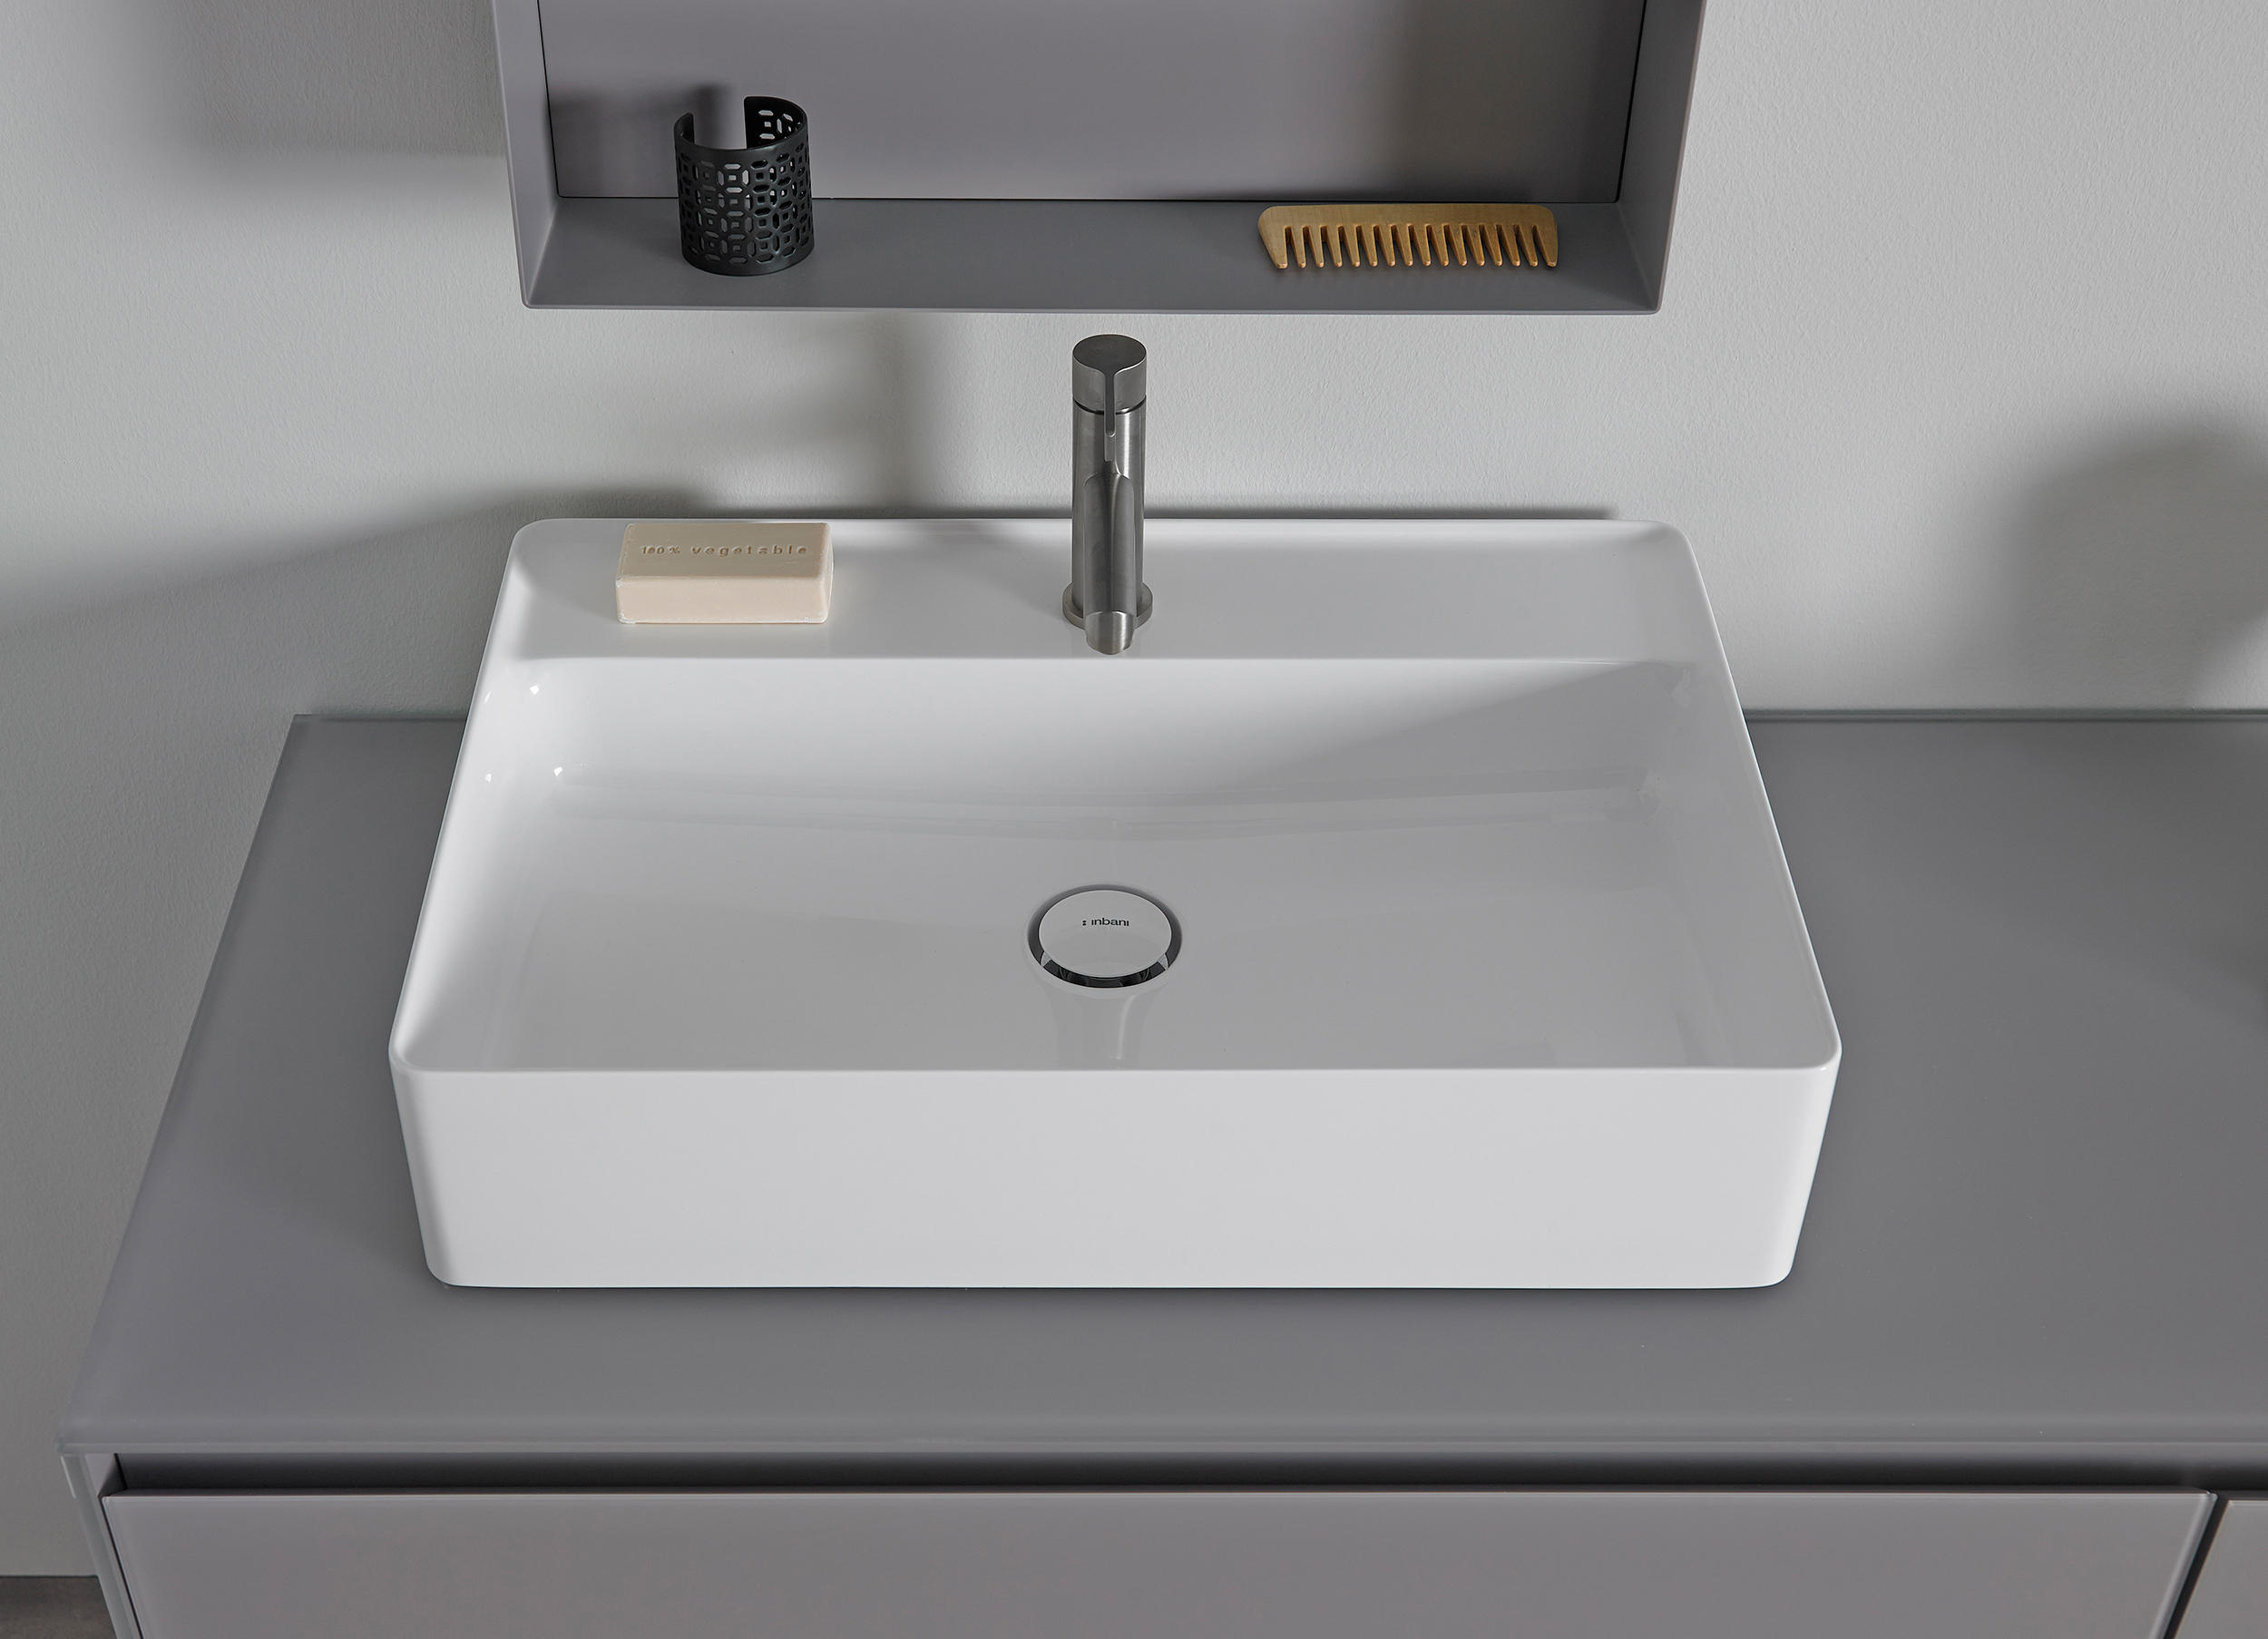 Bathroom Sinks Top Mount nest top mount ceramilux® sink - wash basins from inbani | architonic